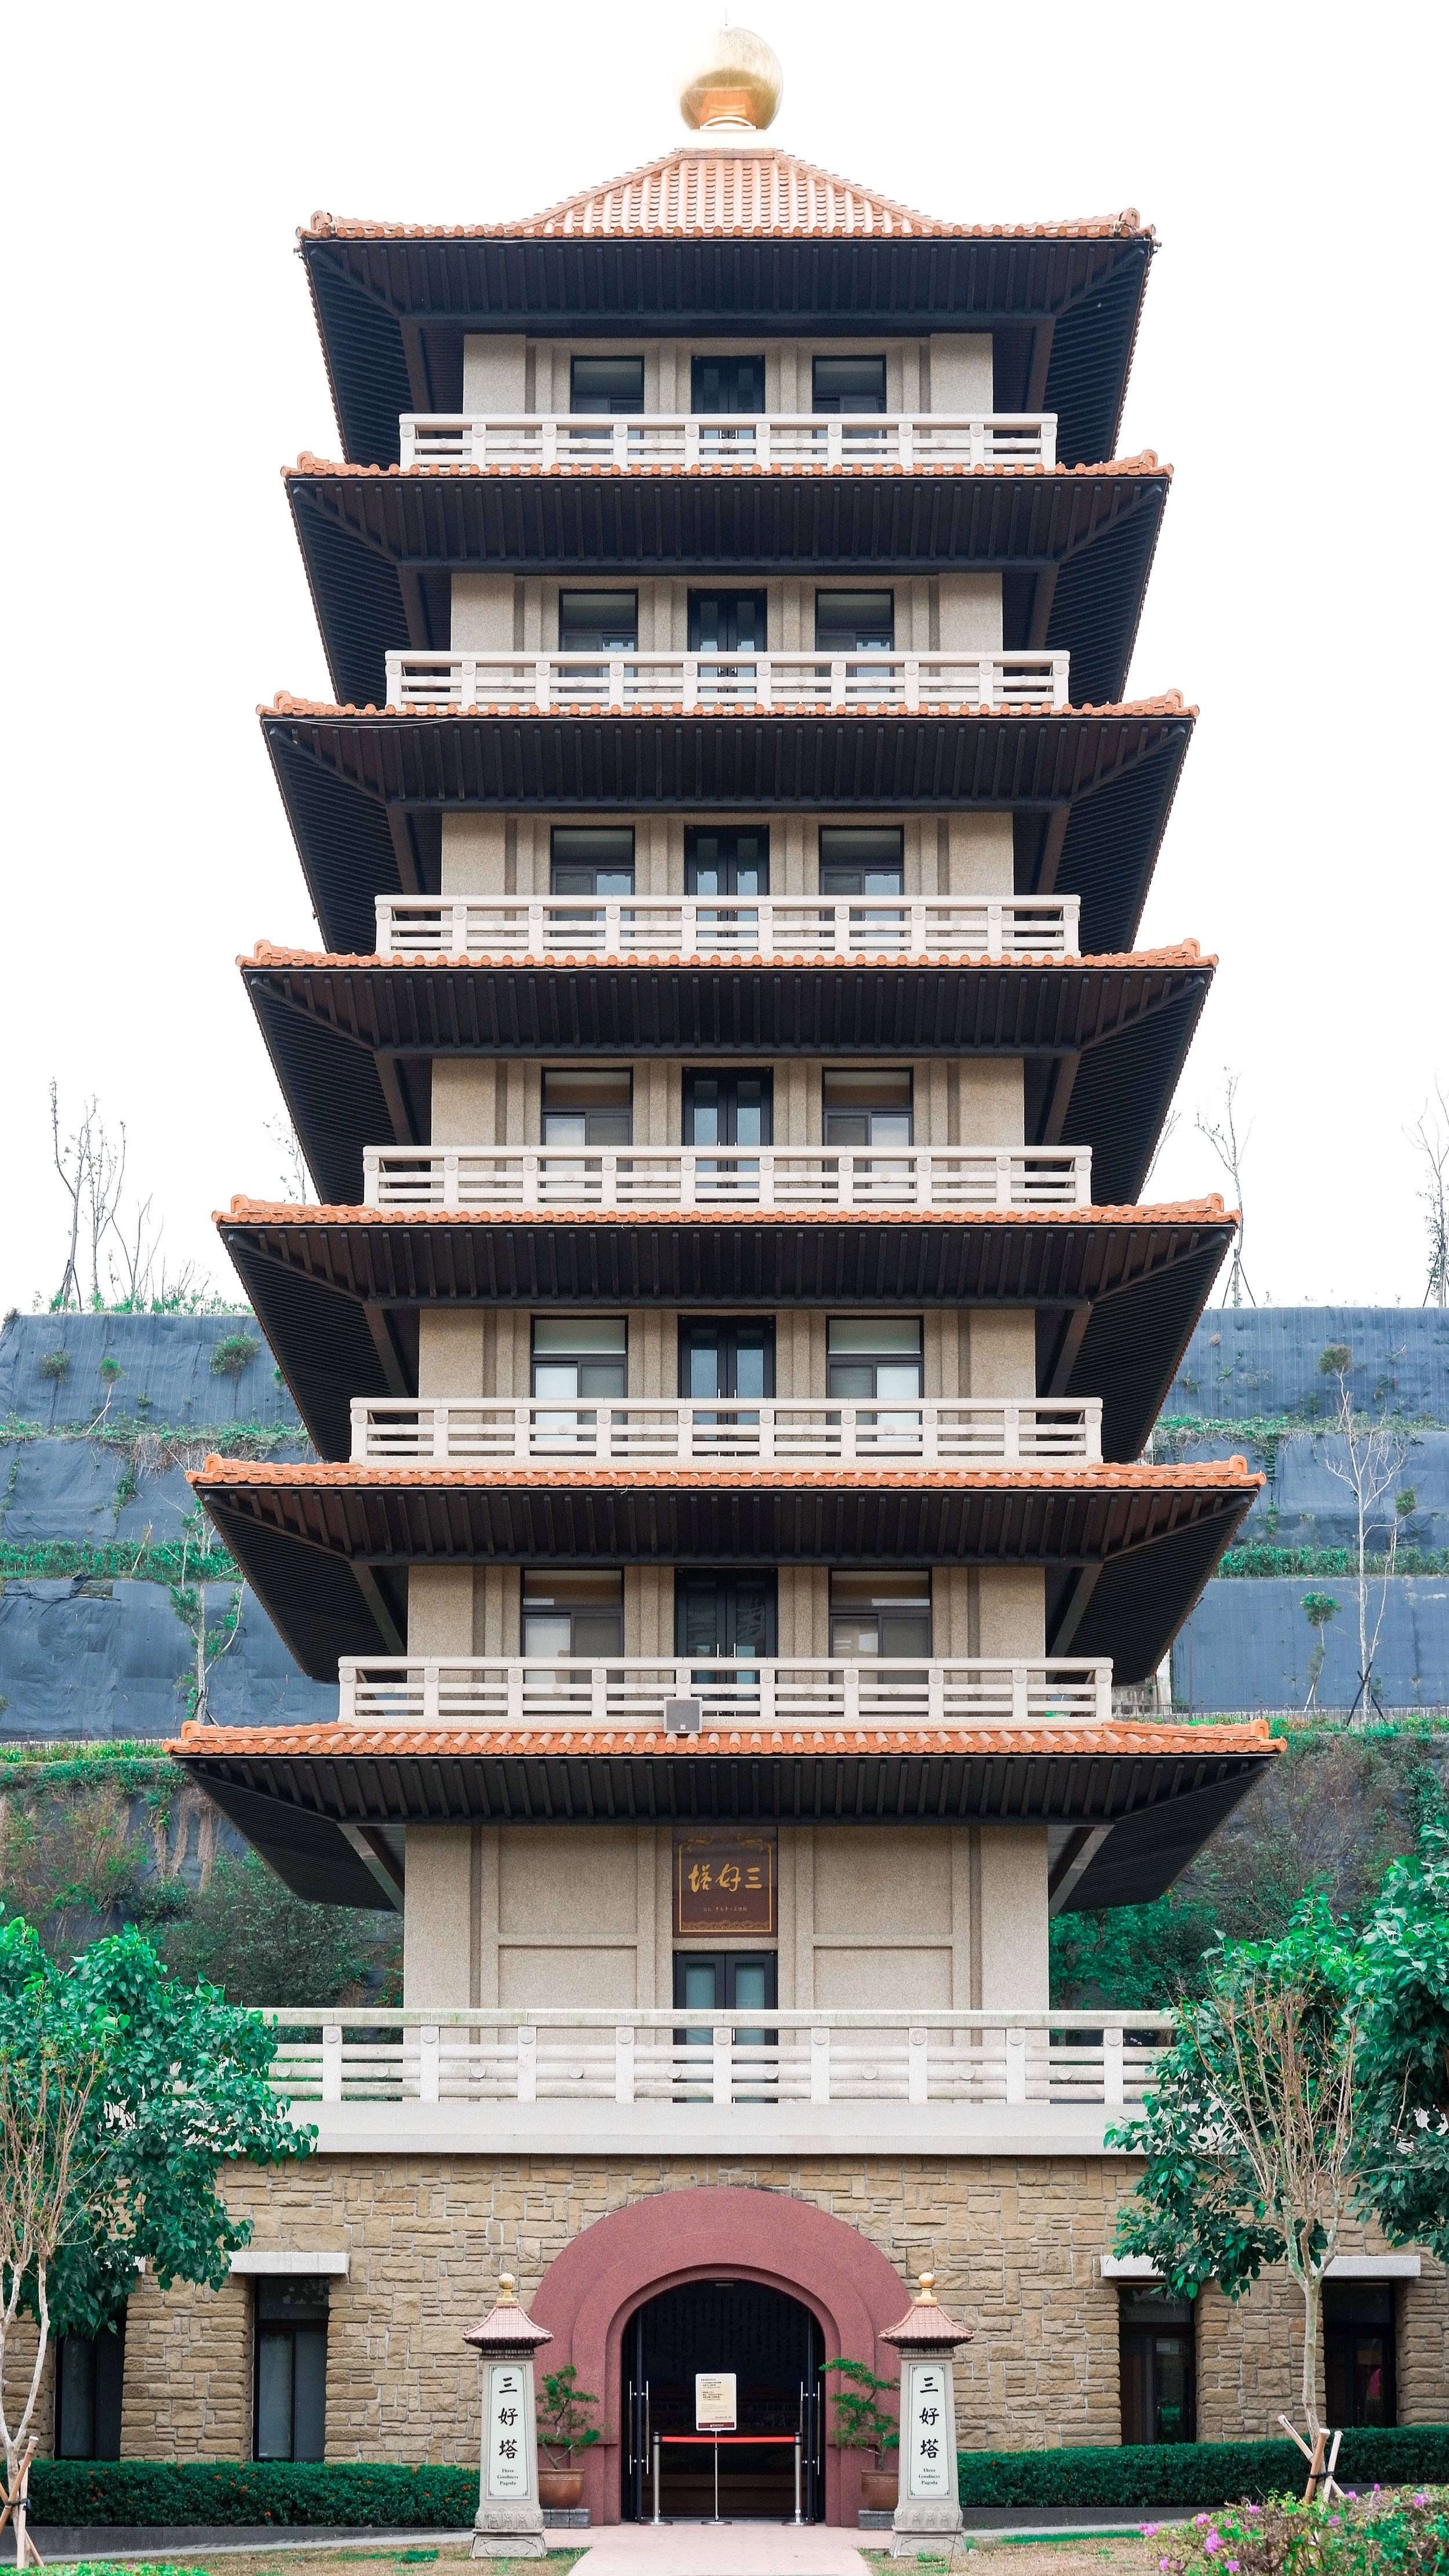 Fo Guang Shan Buddha Museum is a must-visit if you're in the Kaohsiung area, it's a little touristy but well-worth the effort if you're into learning about a country's culture/religion.